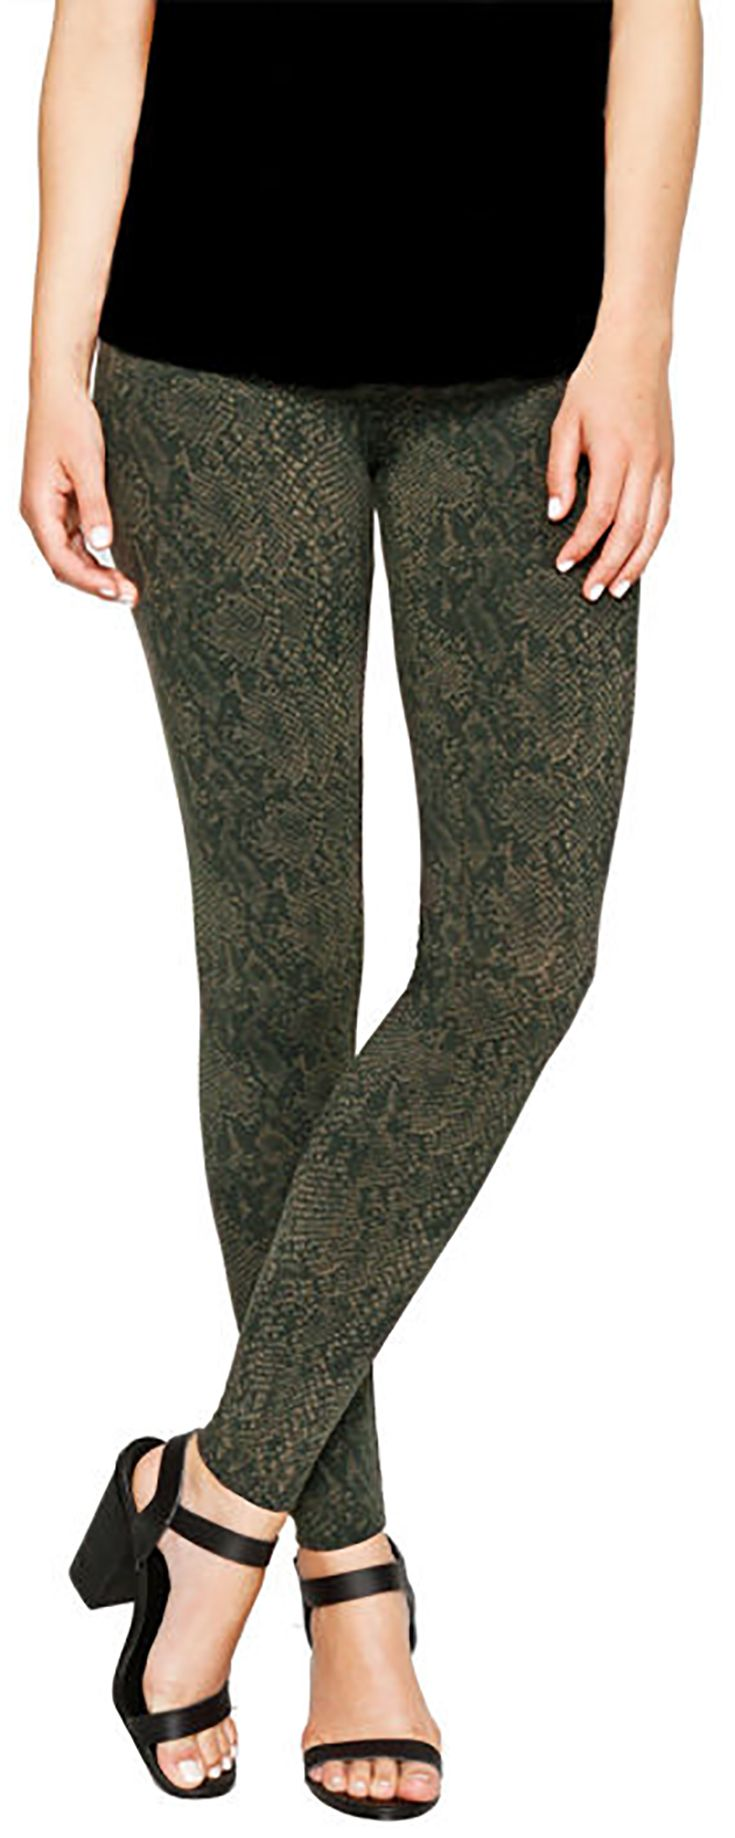 208f6ea40a5684 Matty M Ladies' Printed Legging - Olive Green | Fall/Winter Girly ...